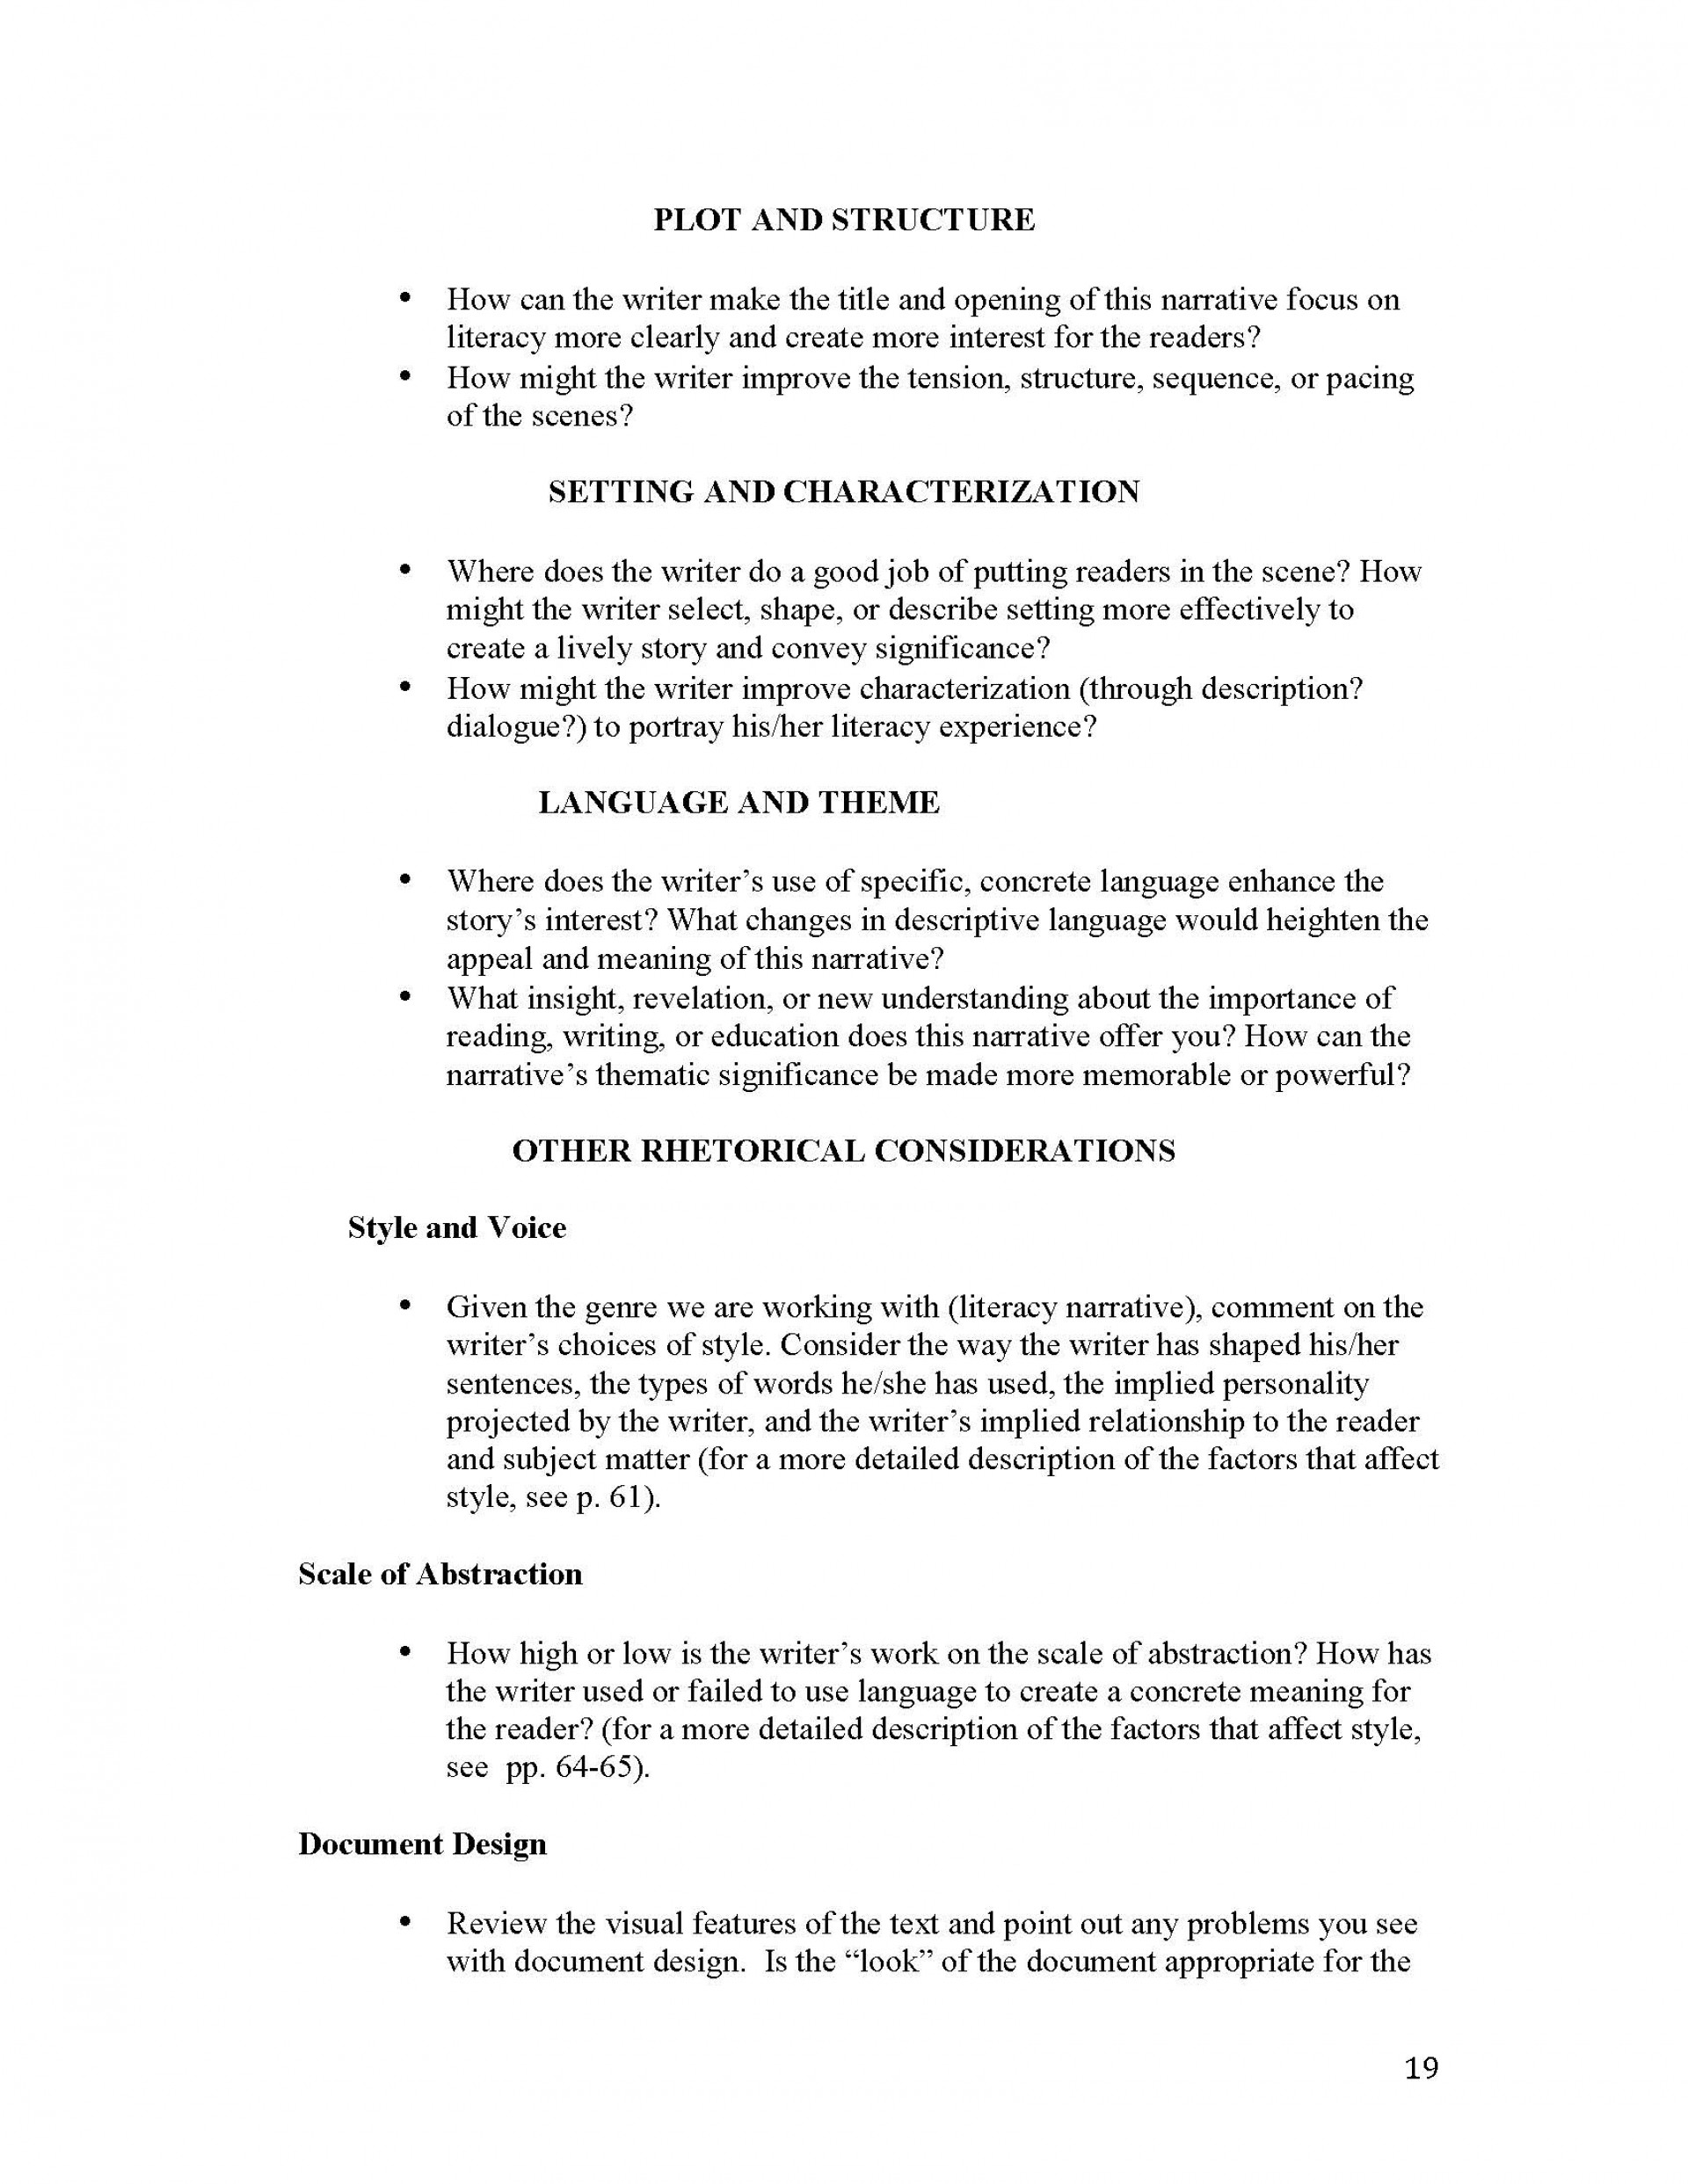 019 Narrative Essay Outline Unit 1 Literacy Instructor Copy Page 19 Impressive Doc Sample 1920